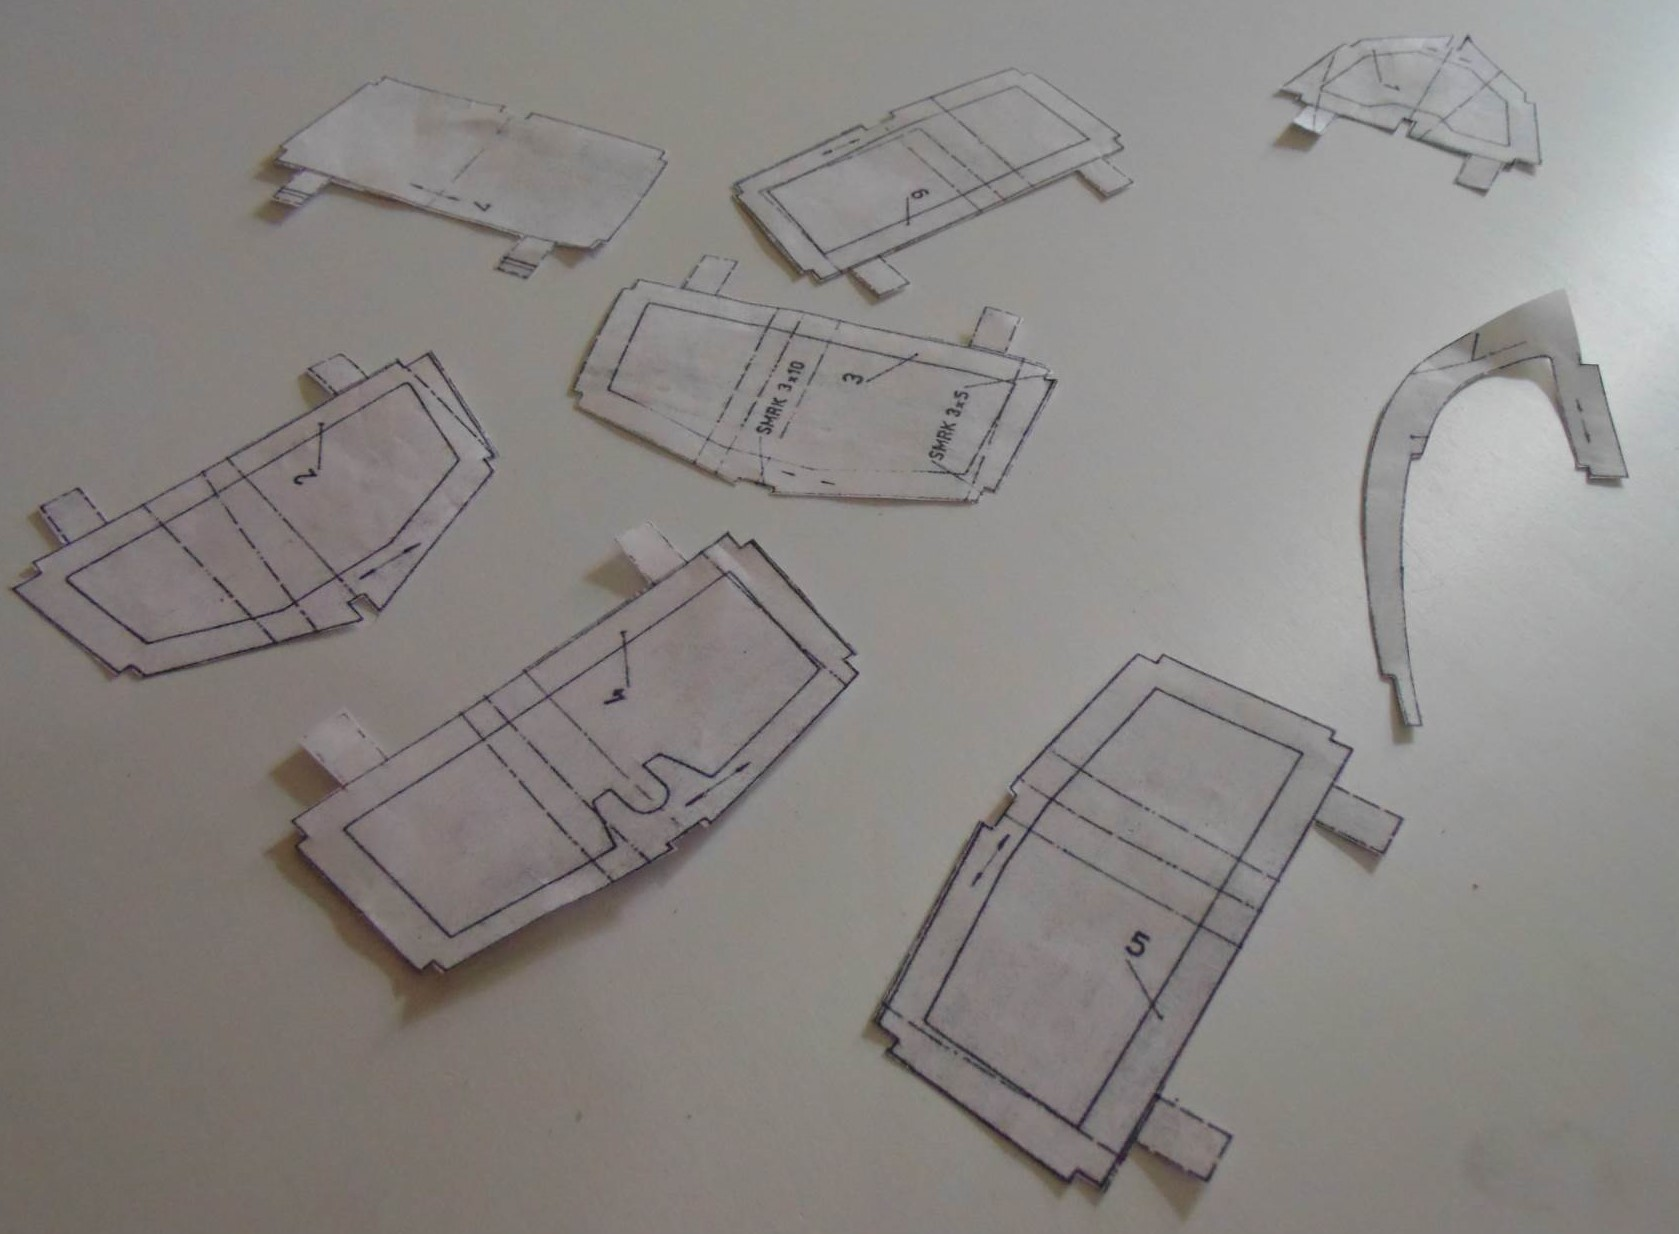 Printed Templates from Remote Control Boat PDF Plan